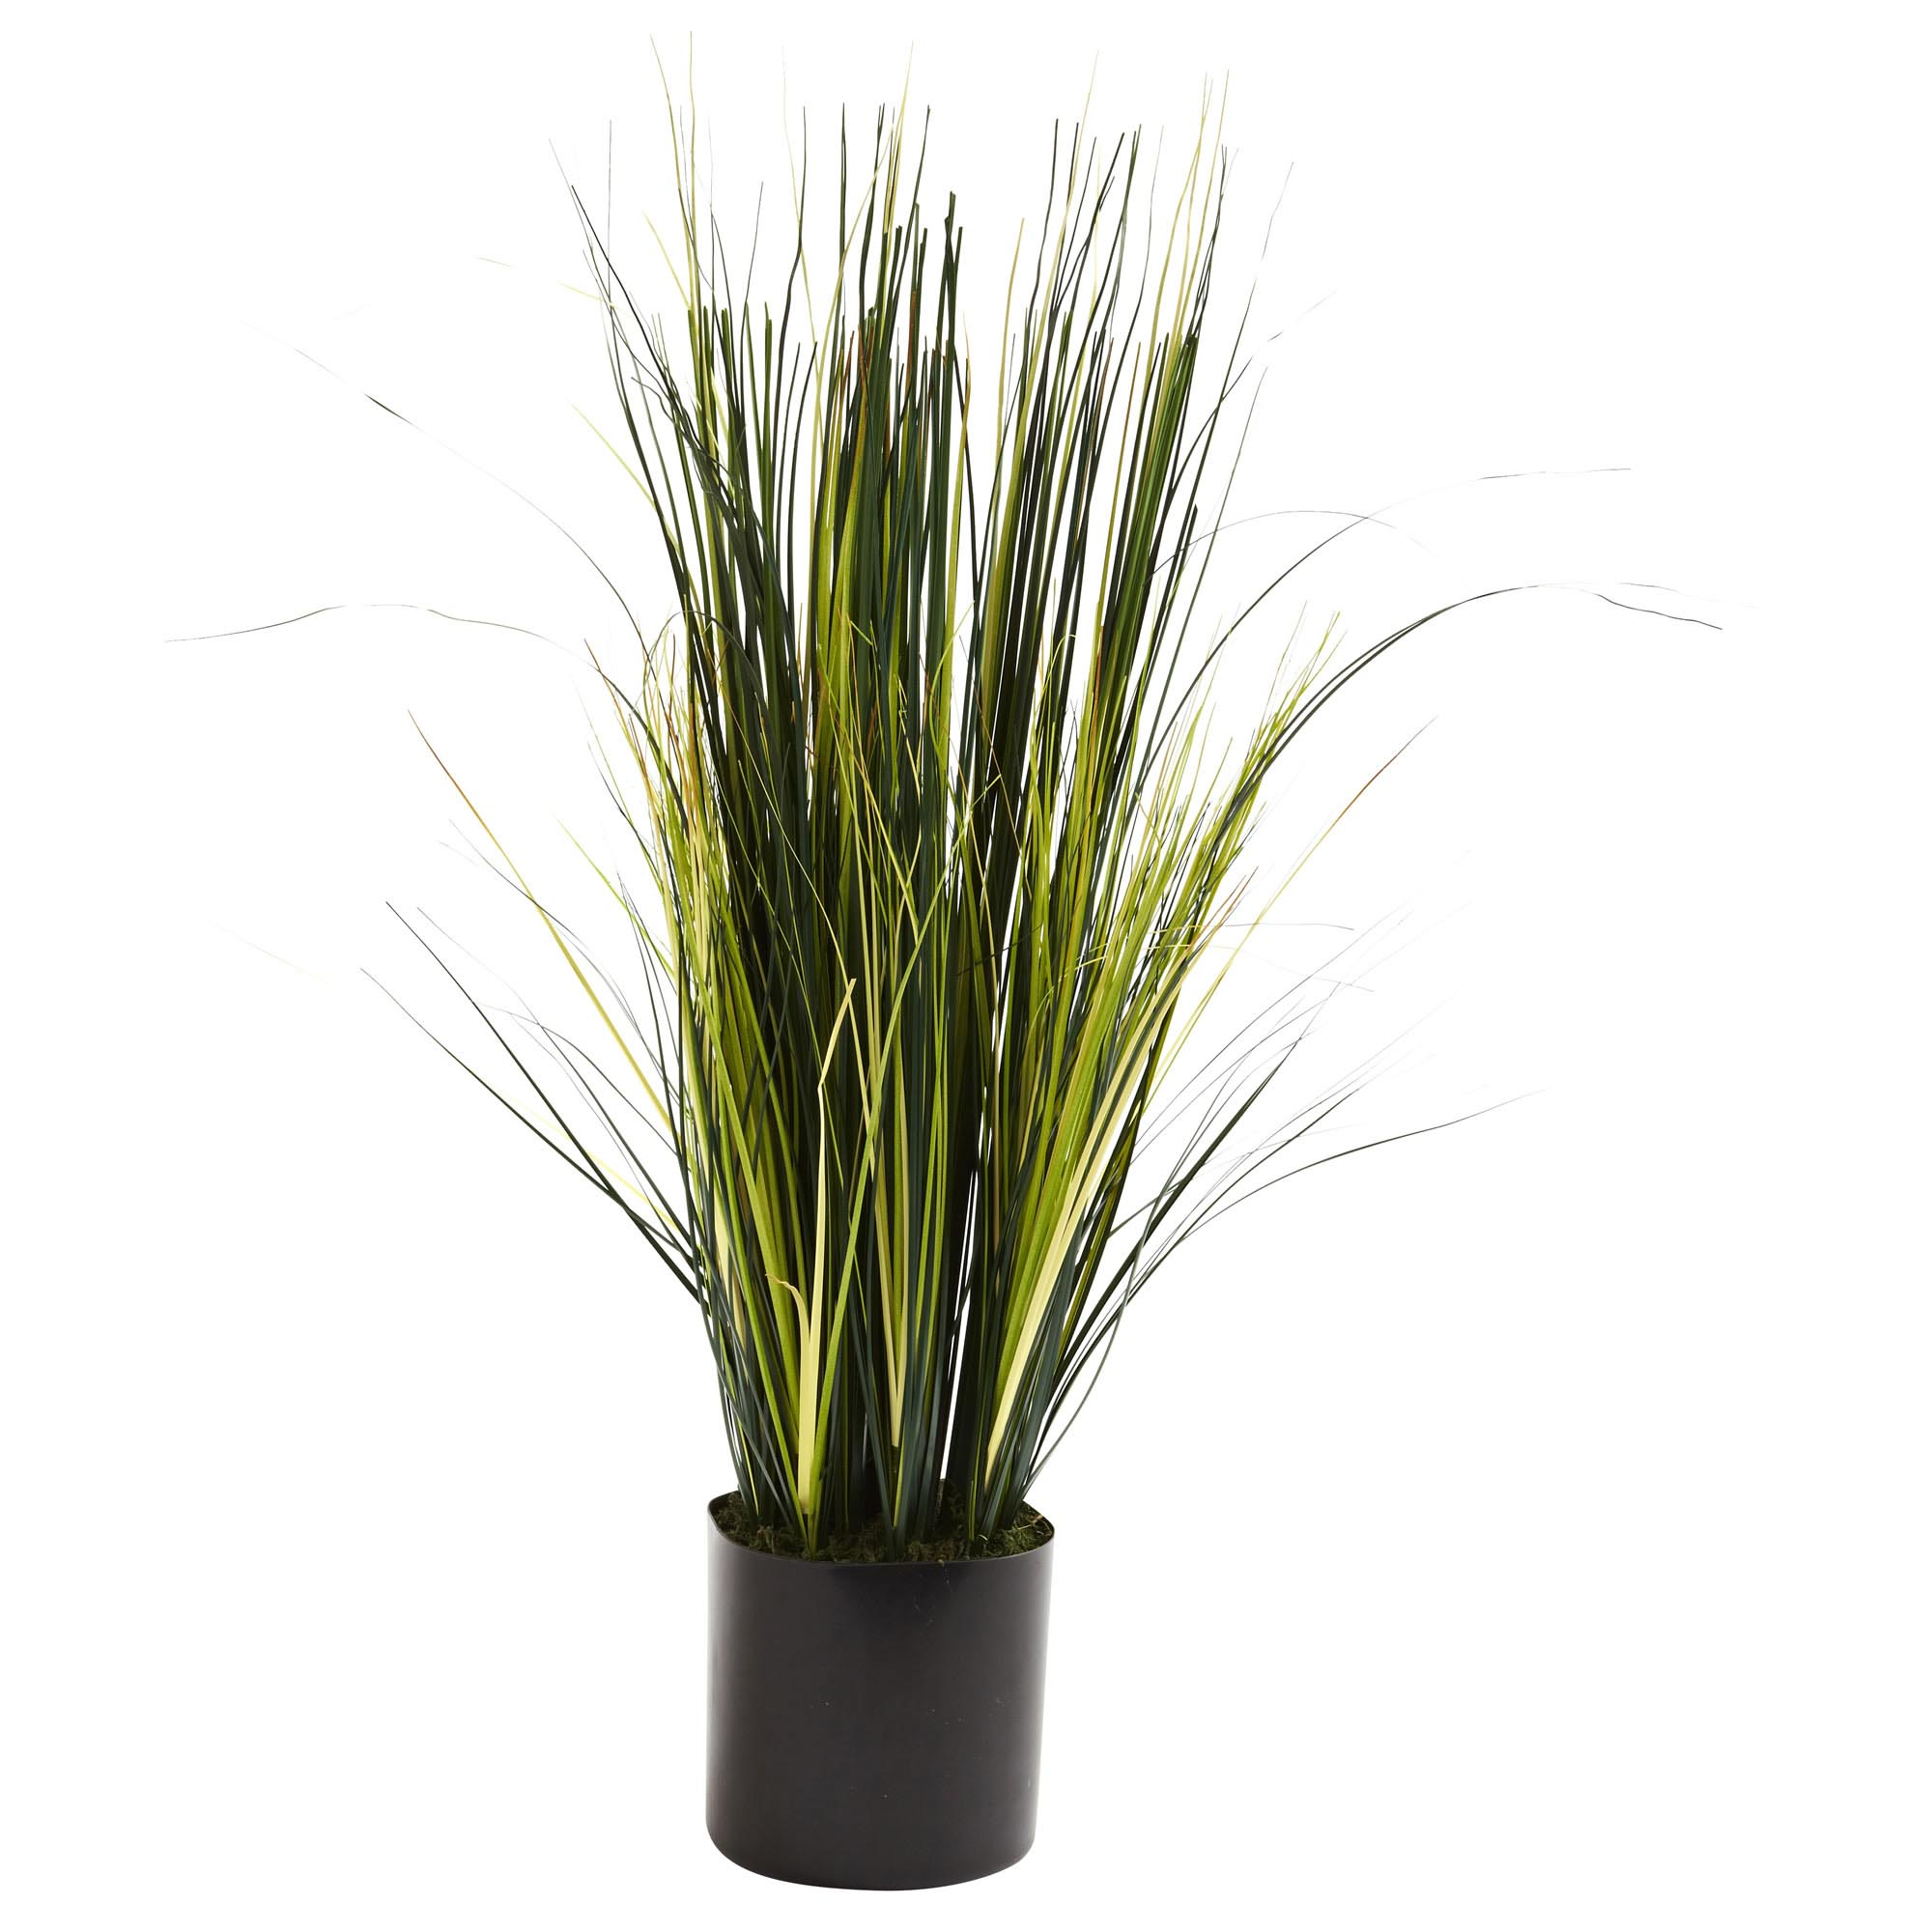 3 foot artificial onion grass plant potted 6766 for Tall grass plants